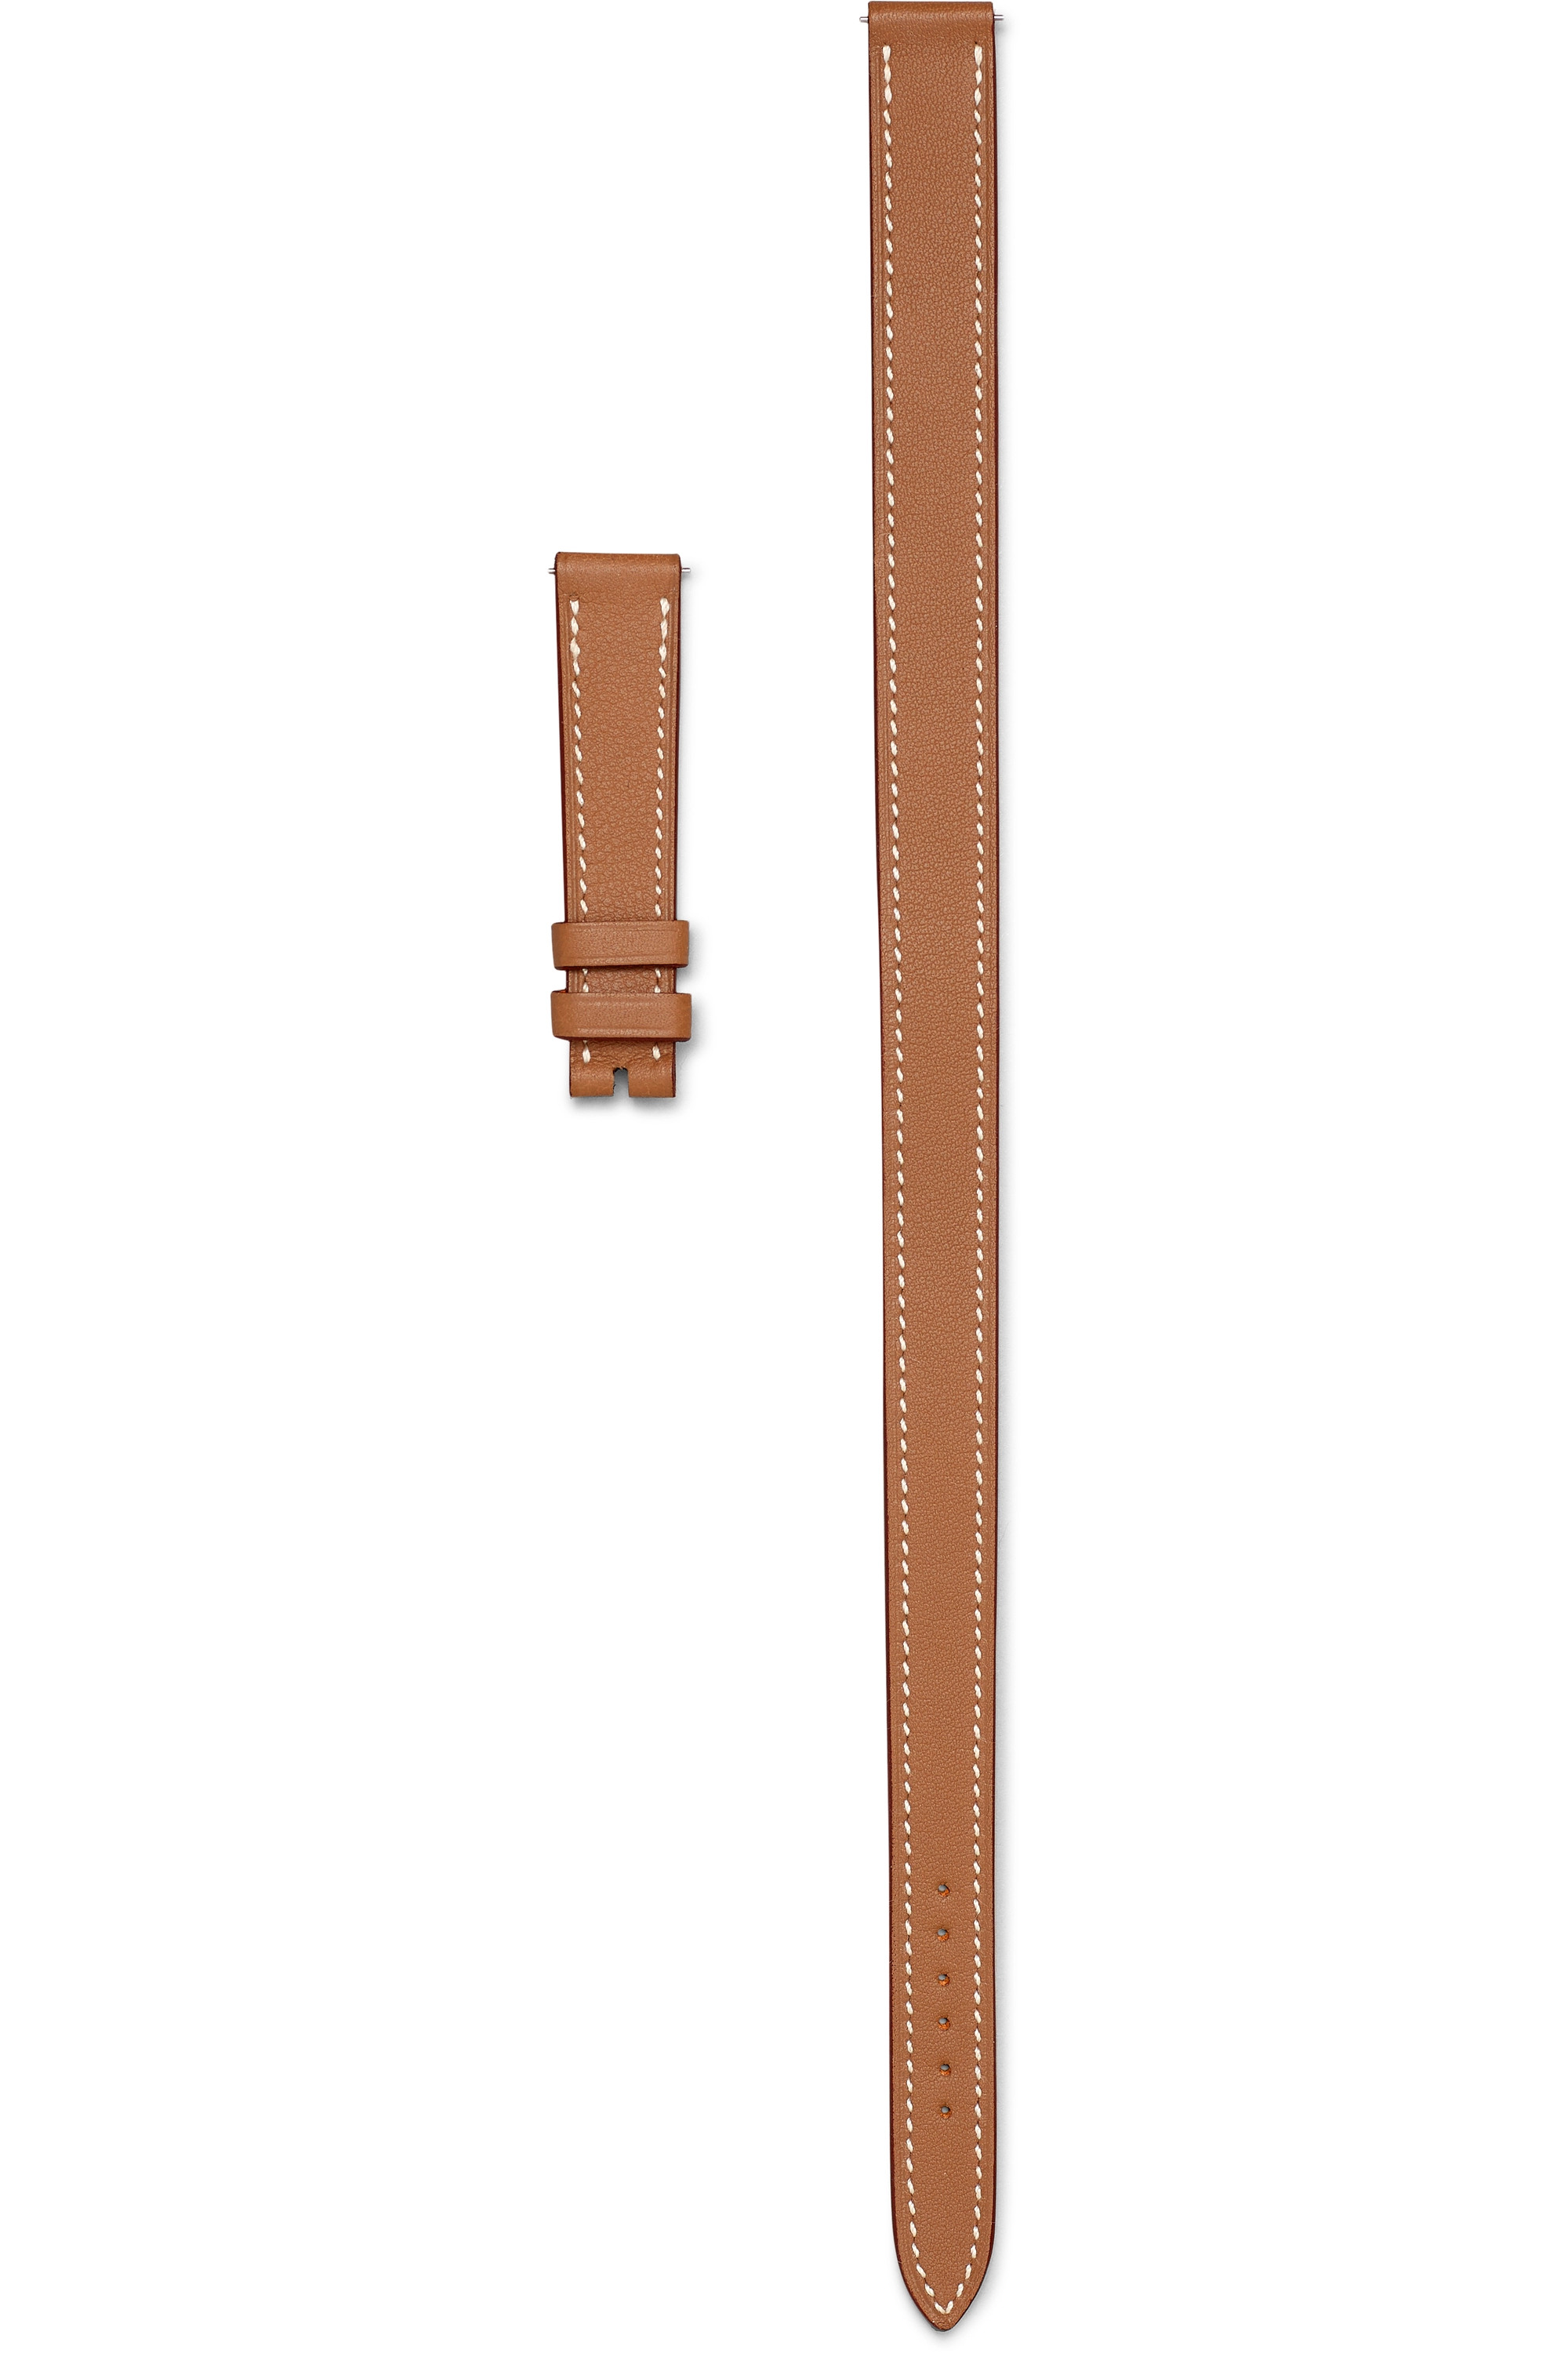 HERMÈS TIMEPIECES Cape Cod Double Tour 23mm leather watch strap